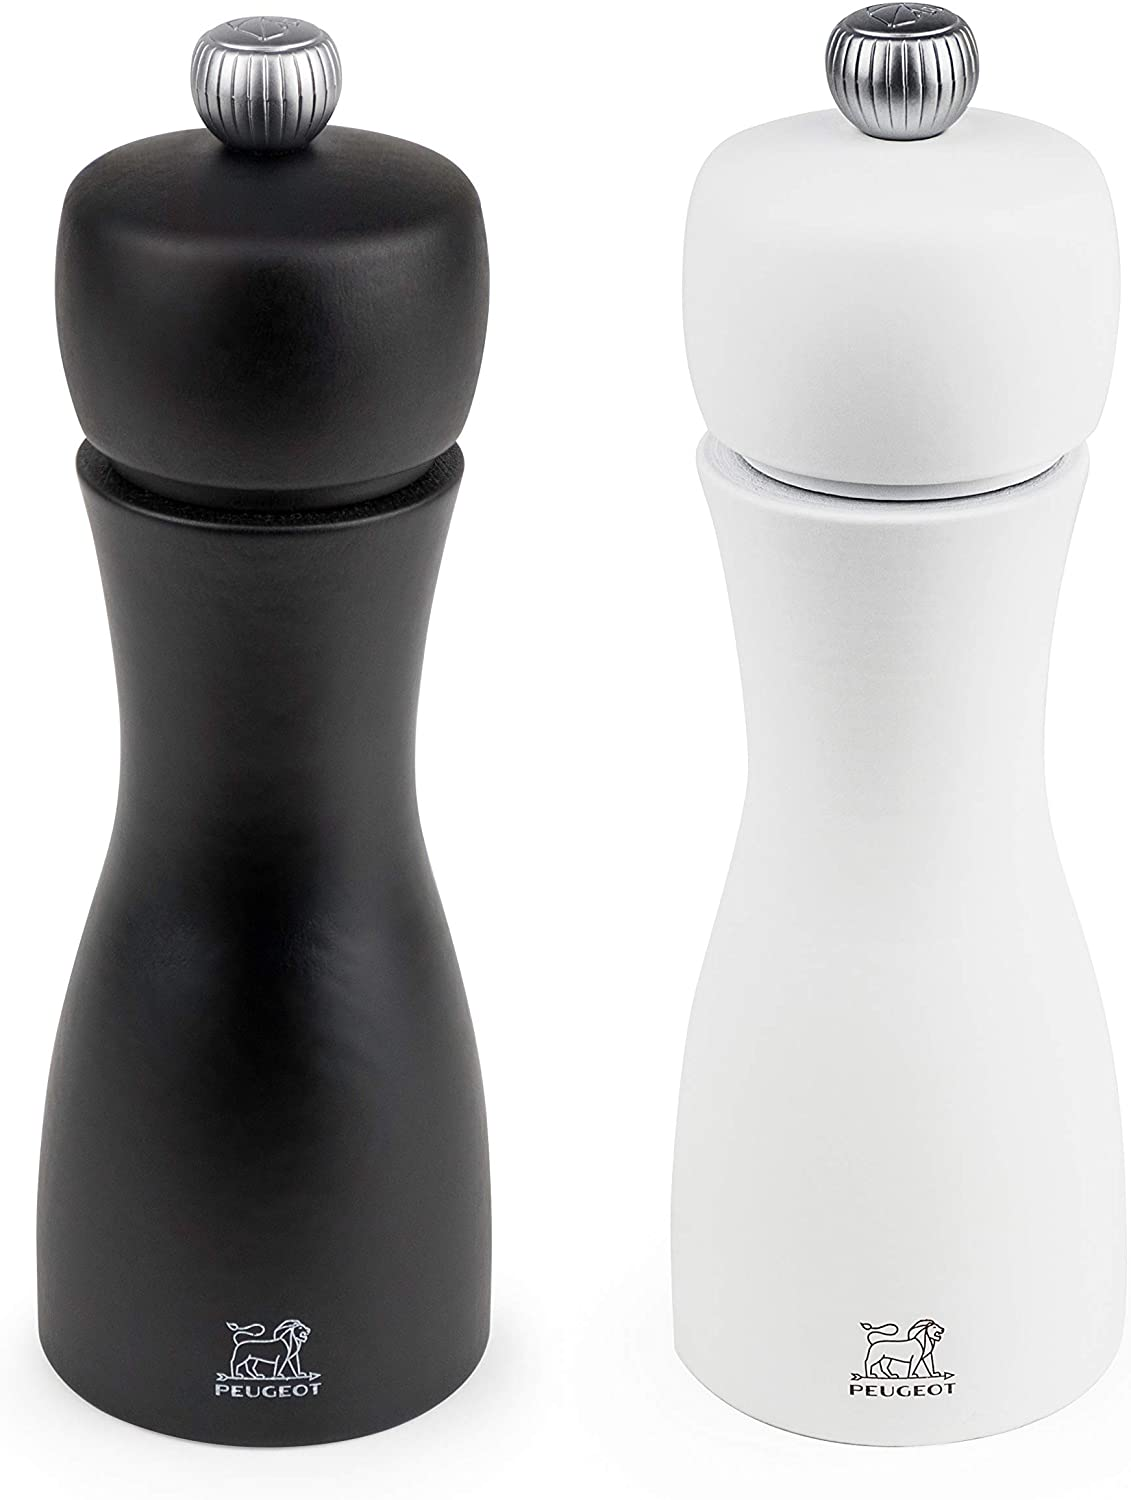 Peugeot Salt Mill & Pepper Mill Set Tahiti Duo Black and White 15cm- Limited Time Offer